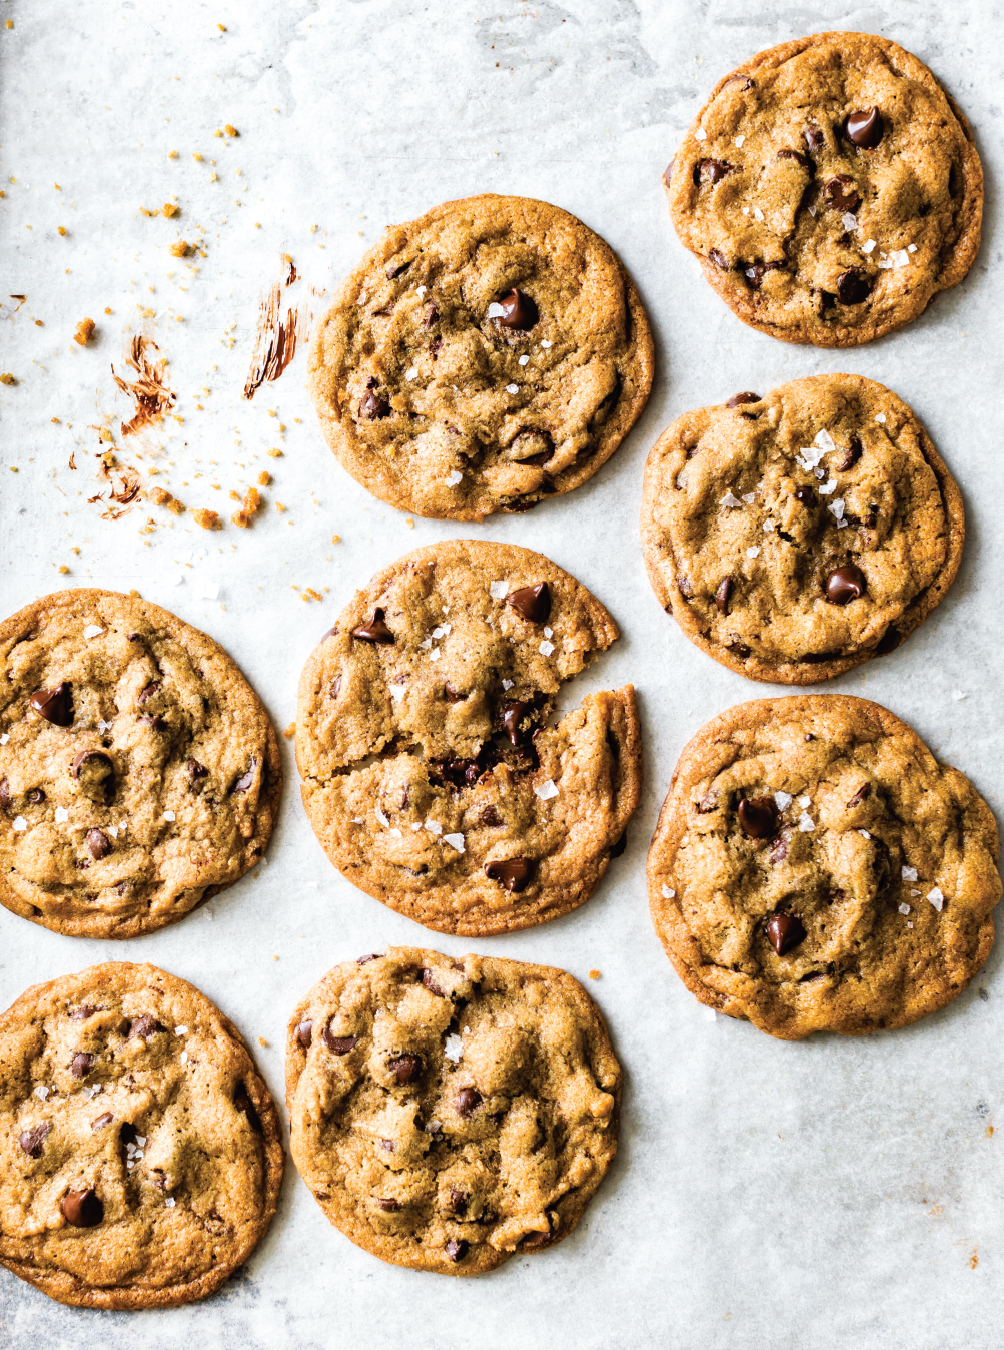 One-Bowl Chocolate Chip Cookie recipe from Prep: The Essential College Cookbook by Katie Morford | featured on Didn't I Just Feed You, a food podcast for parents